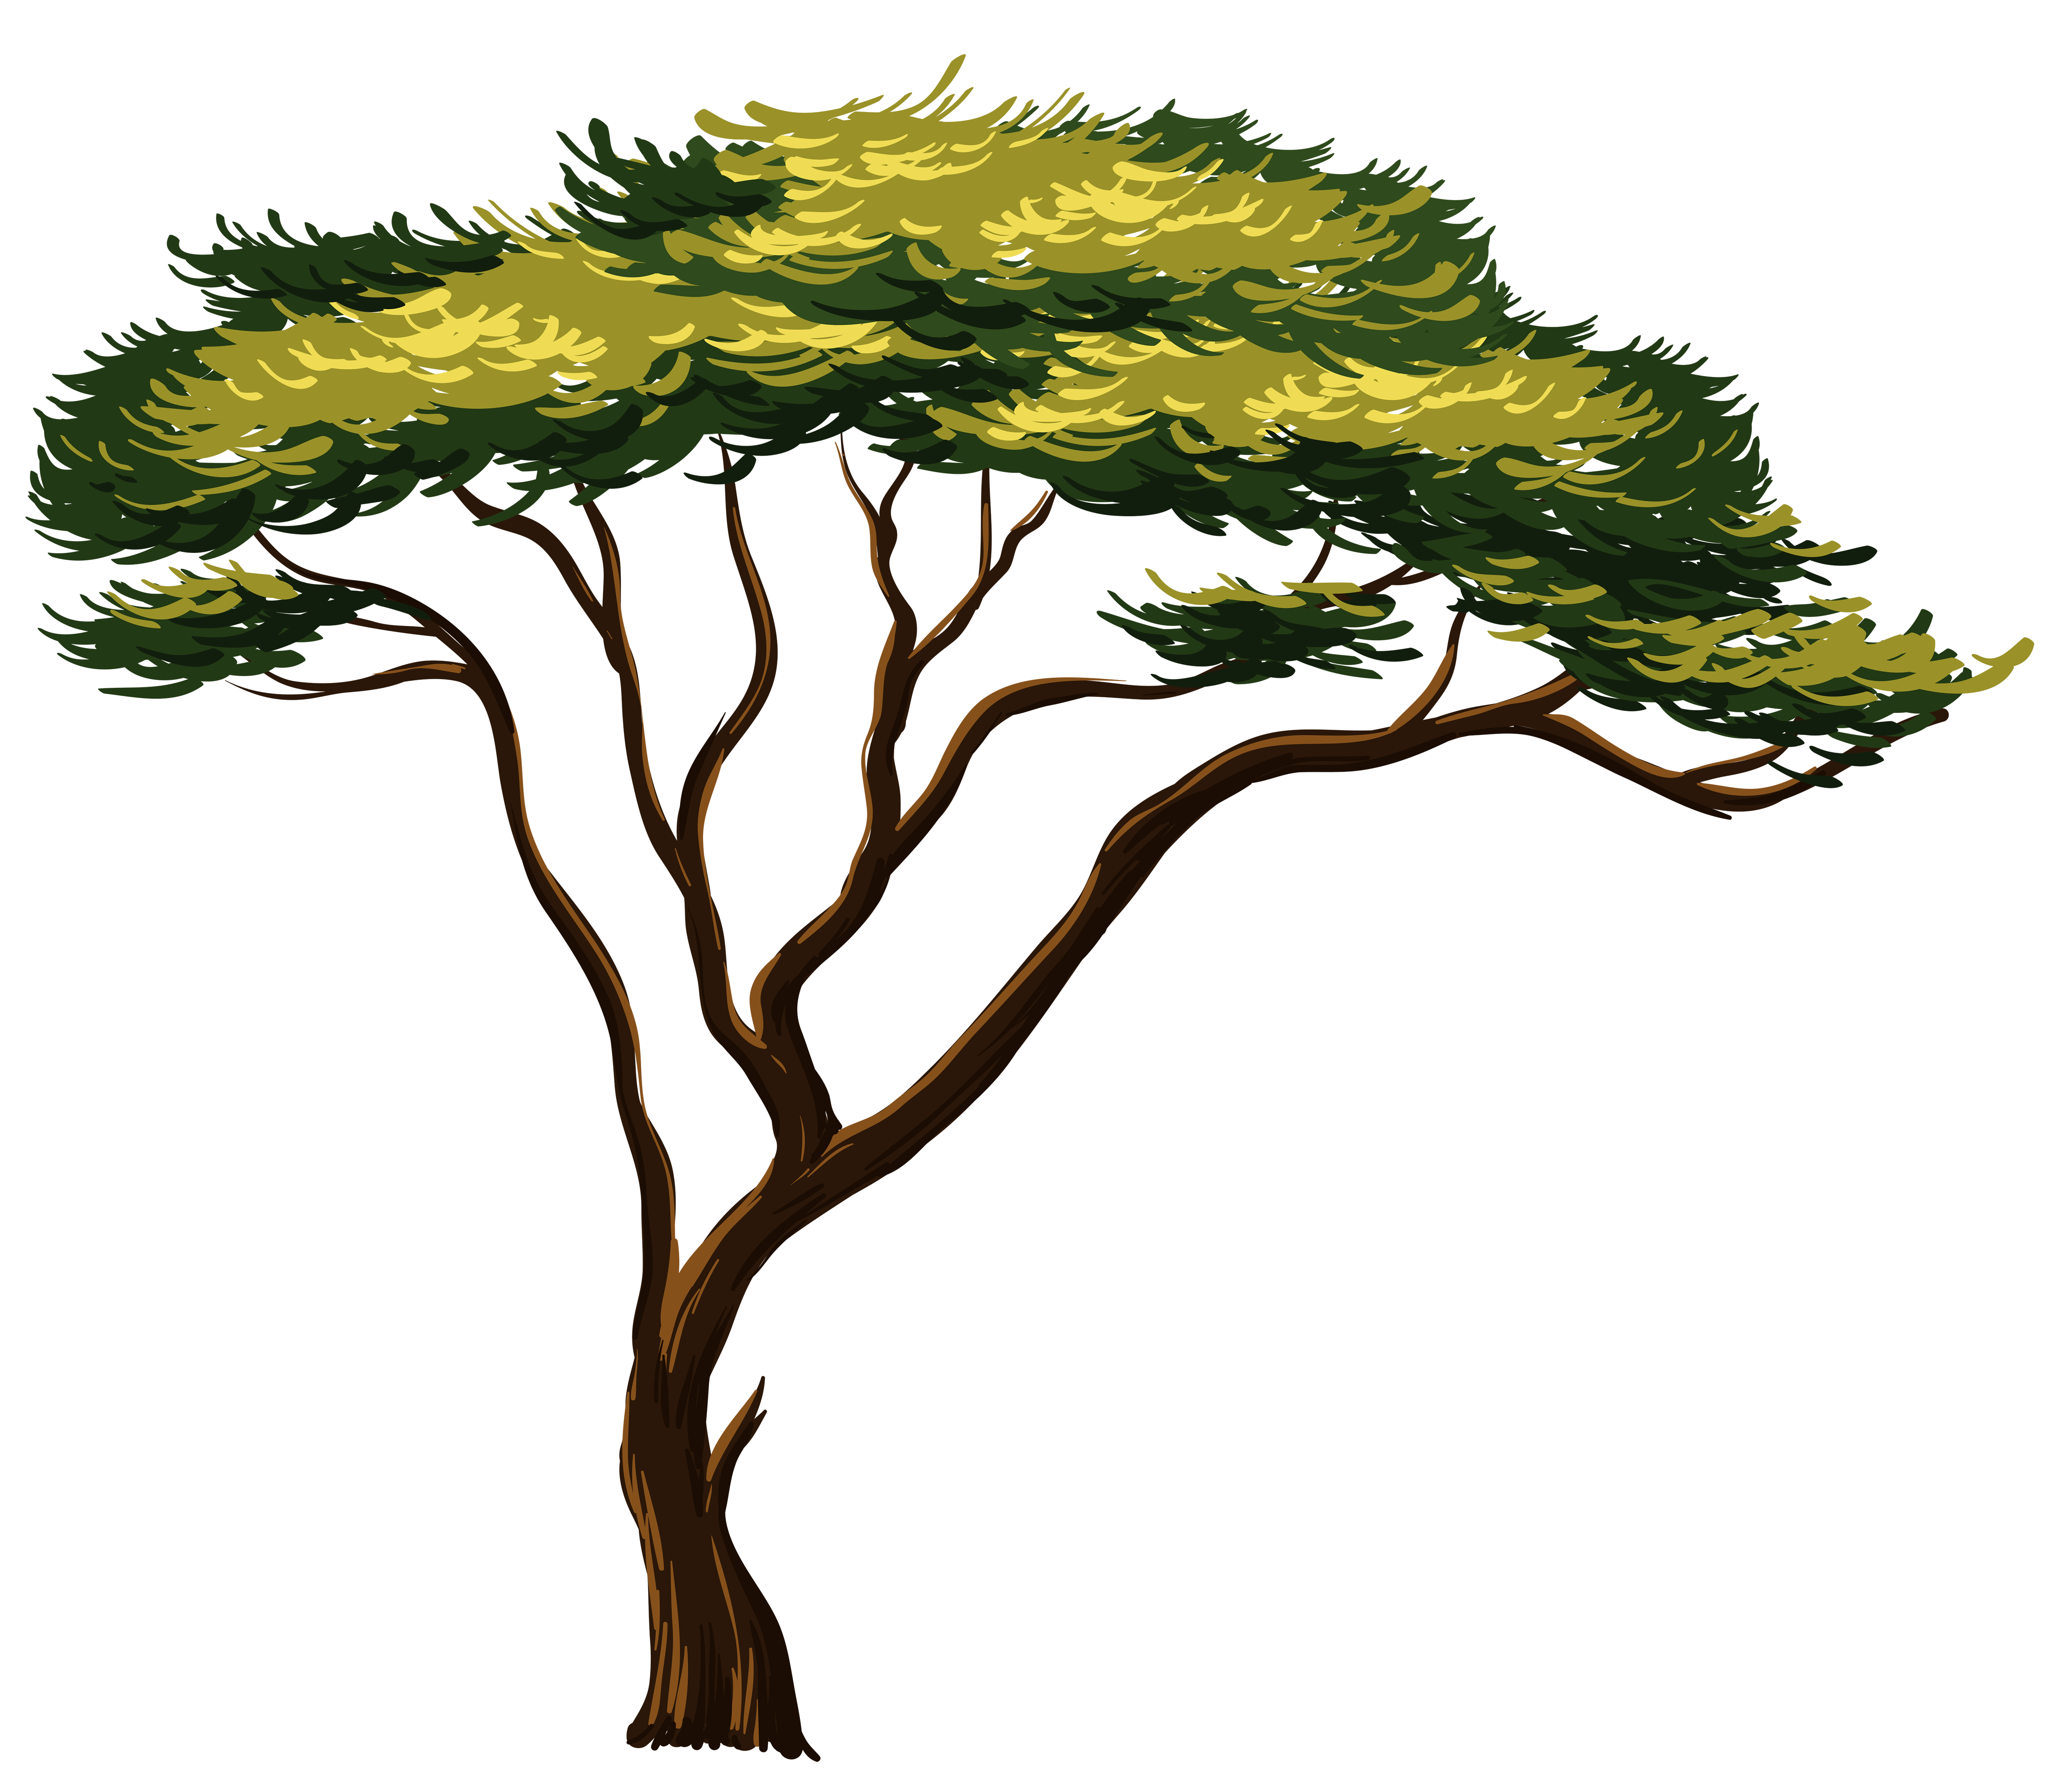 Tree Clipart Transparent Background   Free download on ...